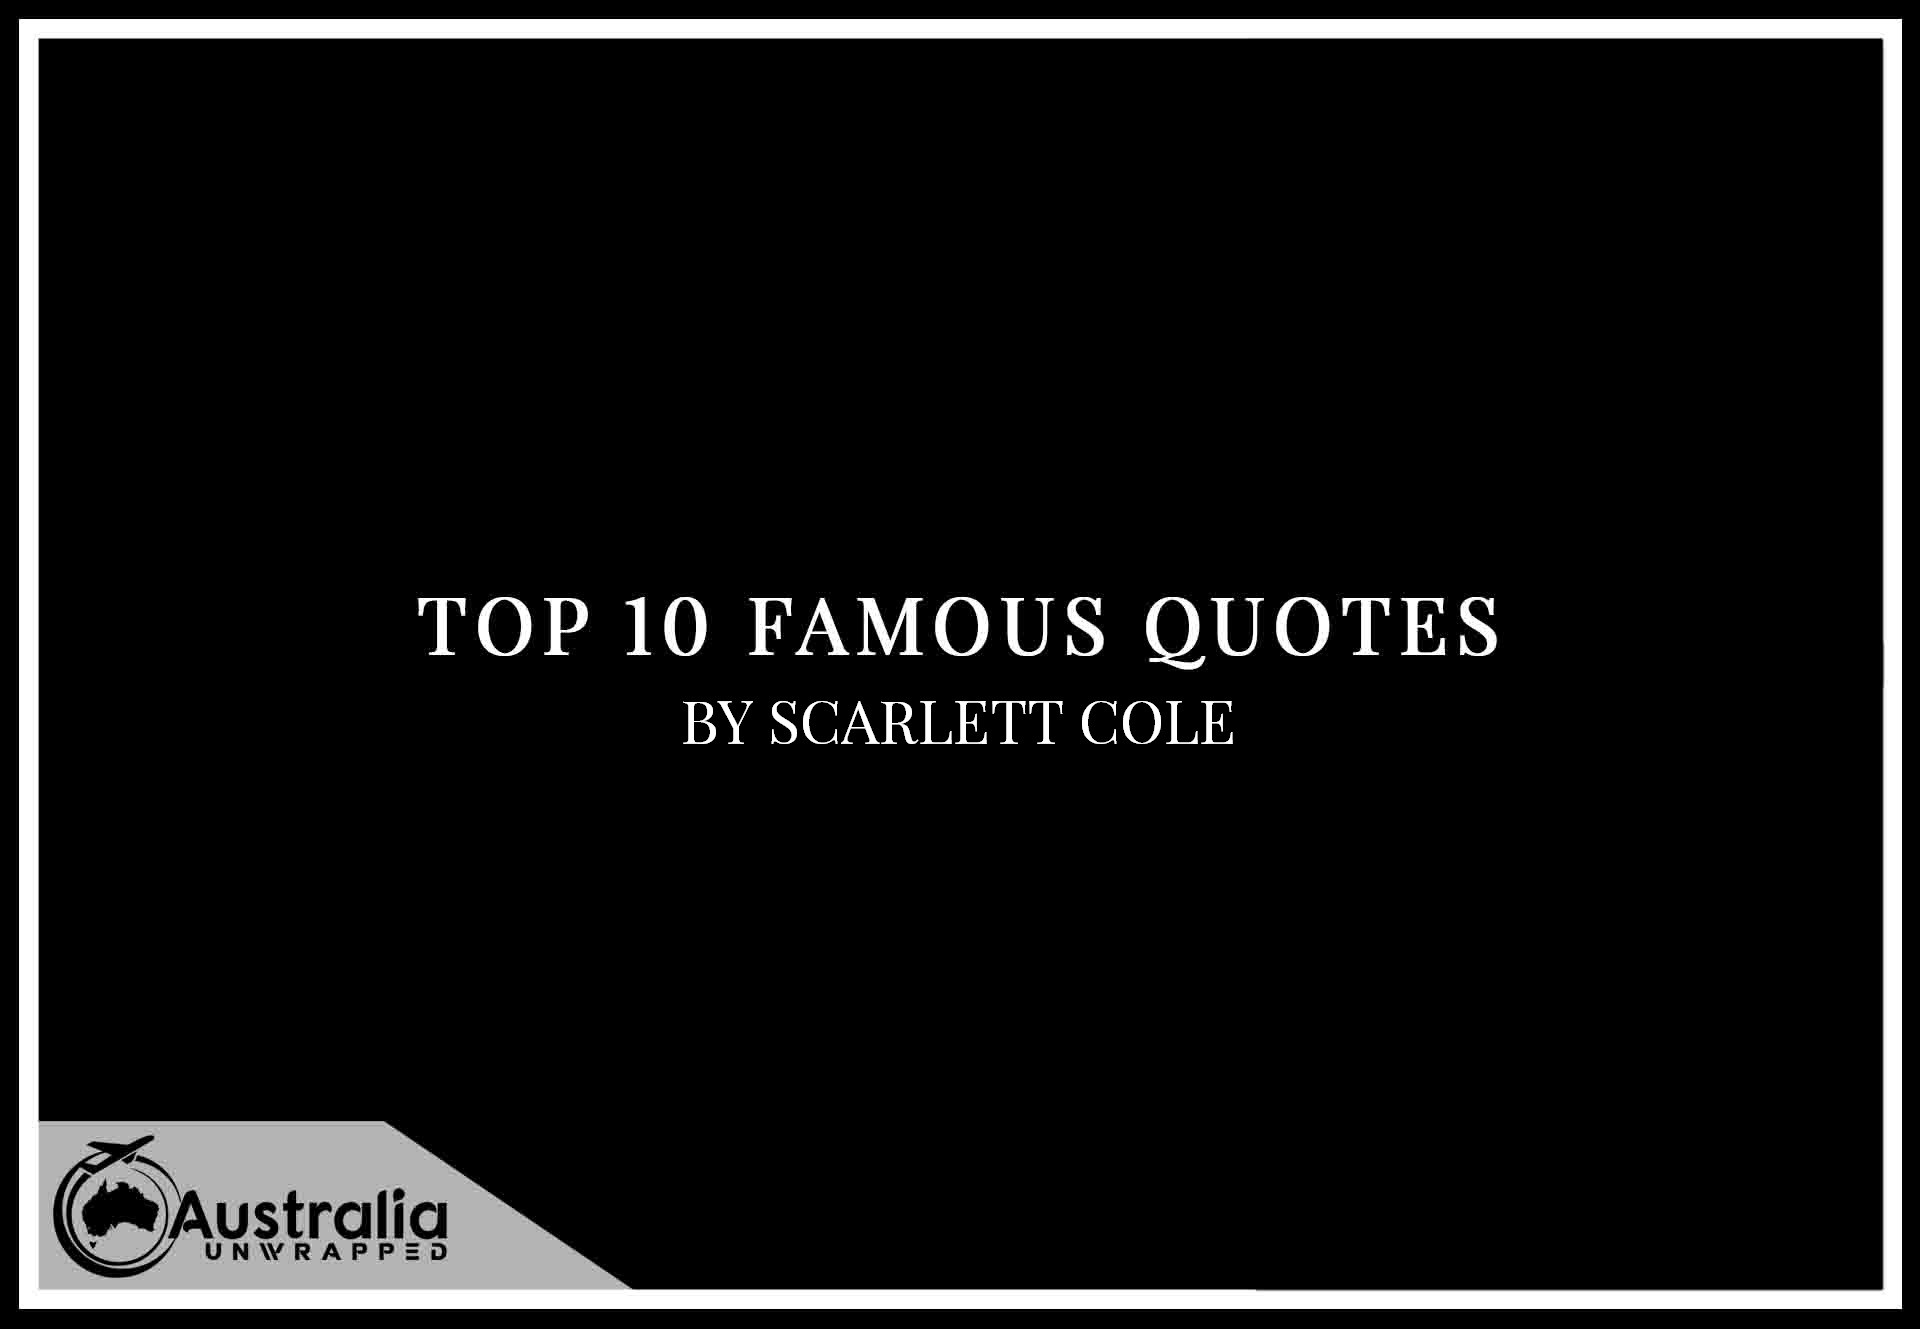 Top 10 Famous Quotes by Author Scarlett Cole